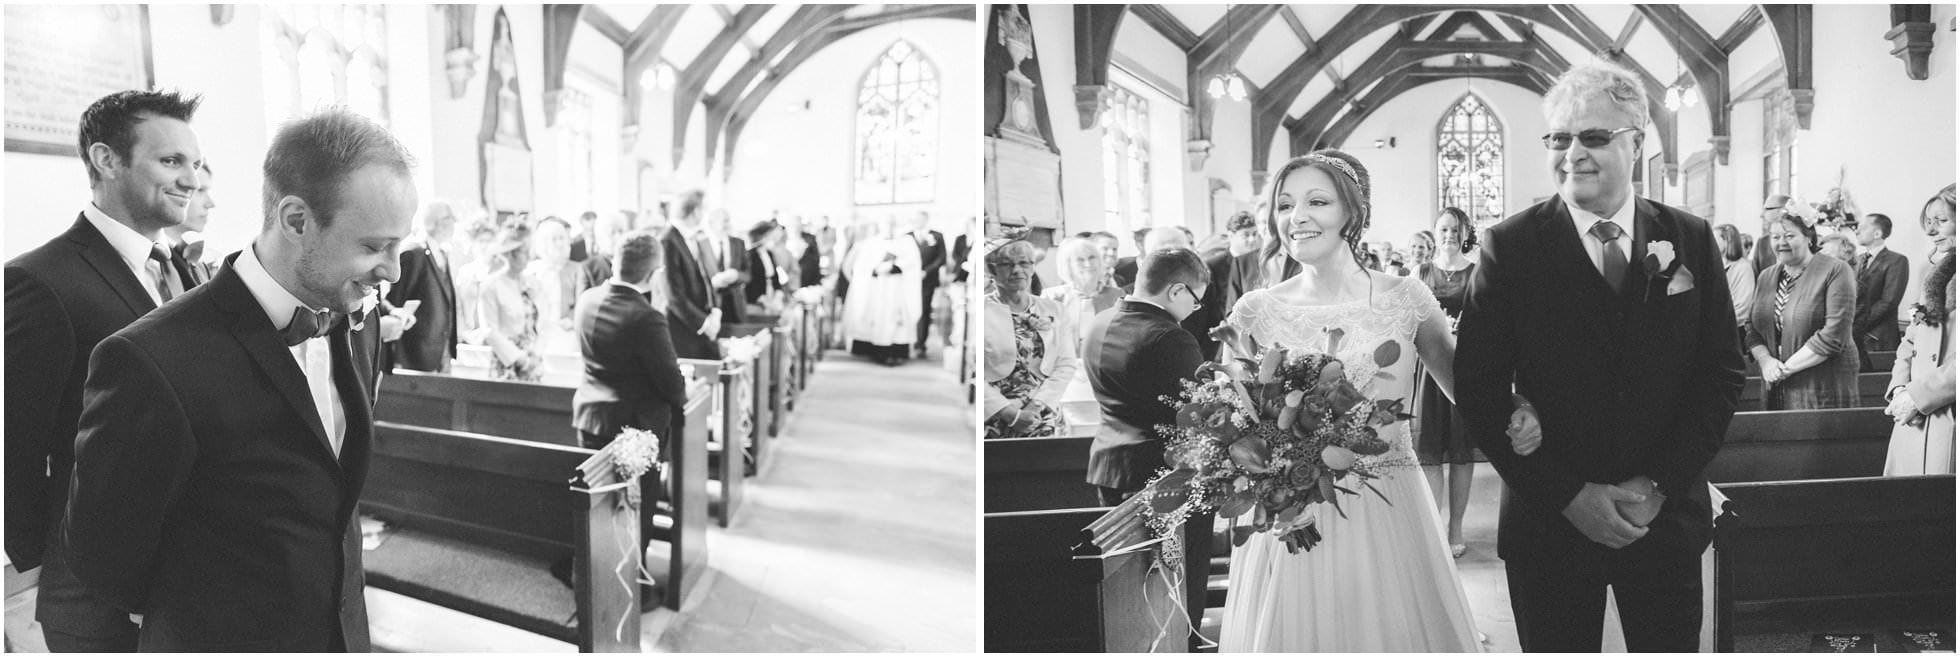 Bride coming down the aisle at Sand Hutton Church, North Yorkshire